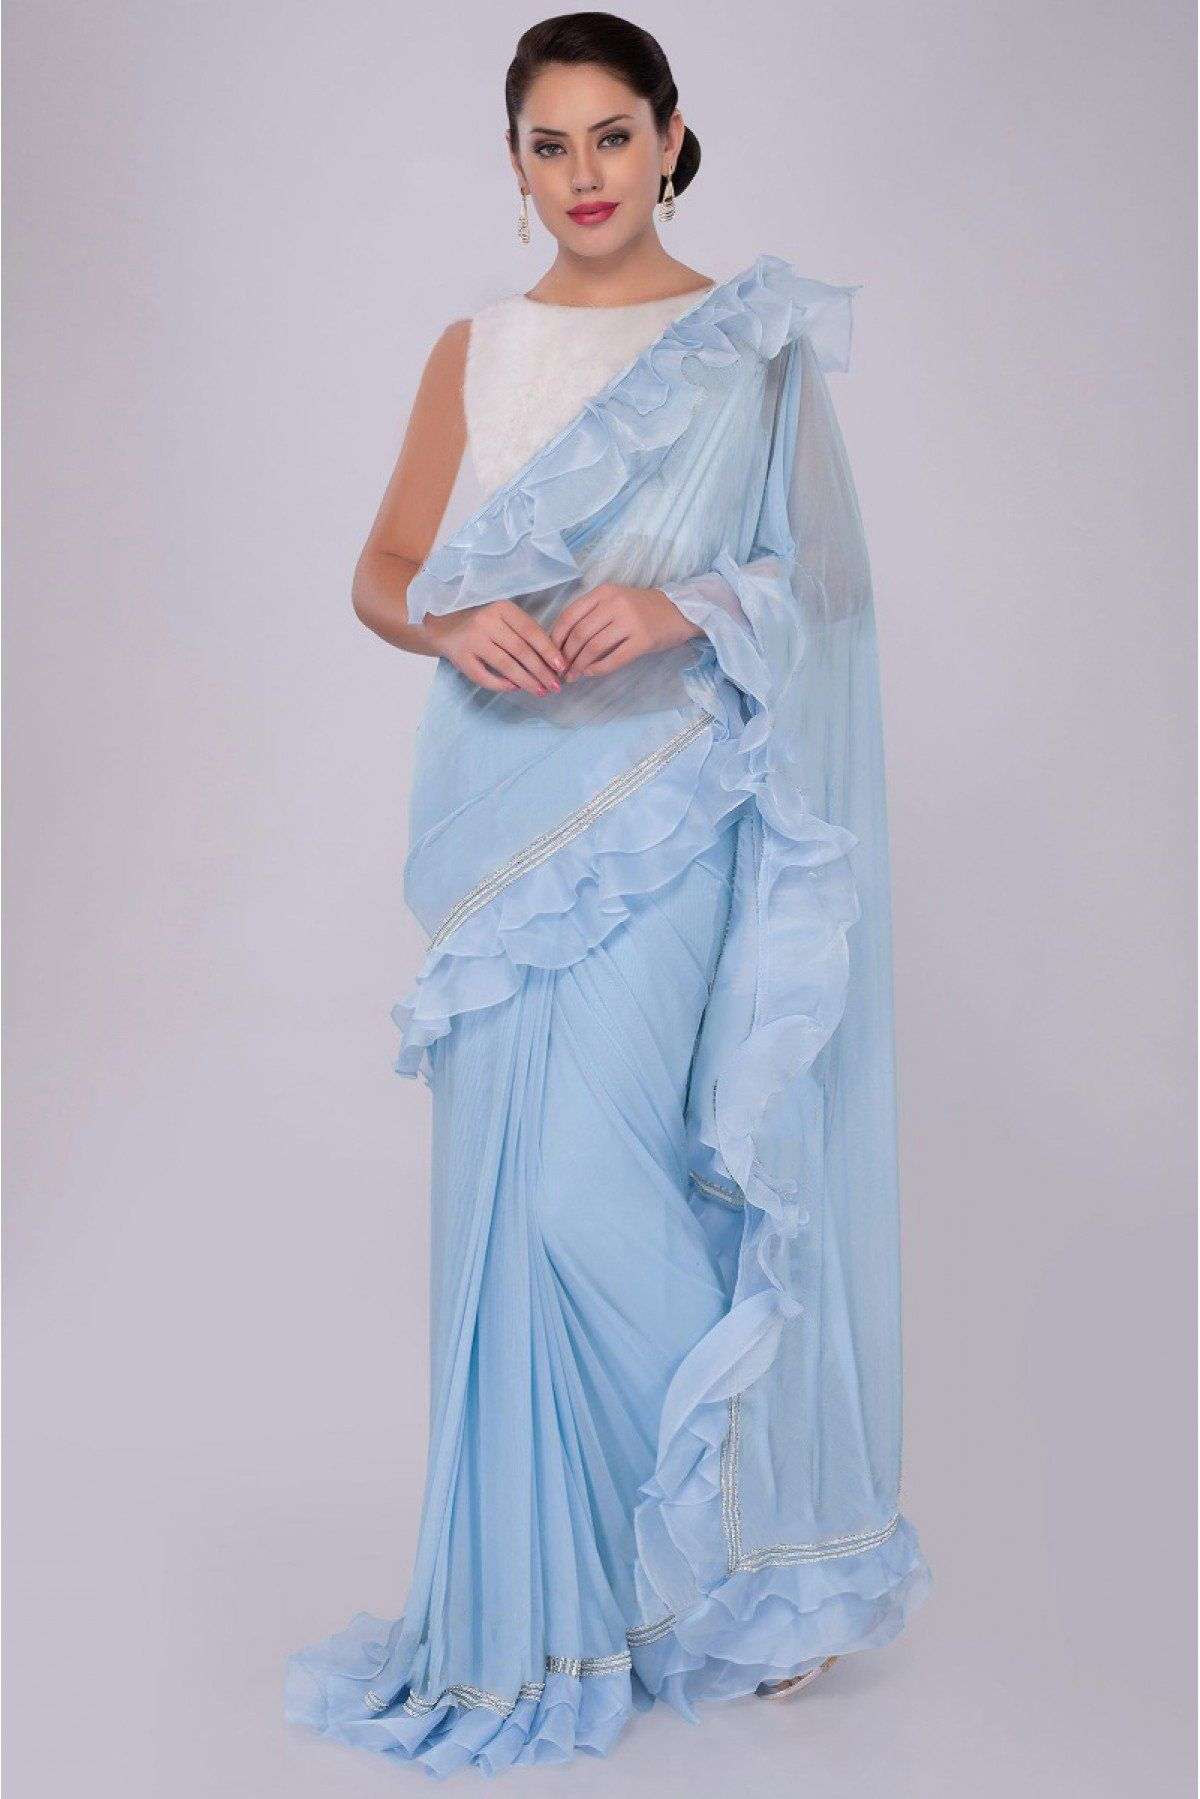 746cb2a869 The Stylish And Elegant Ruffle Saree In Sky Blue Colour Looks Stunning And  Gorgeous With Trendy And Fashionable Georgette Organza Fabric Looks  Extremely ...